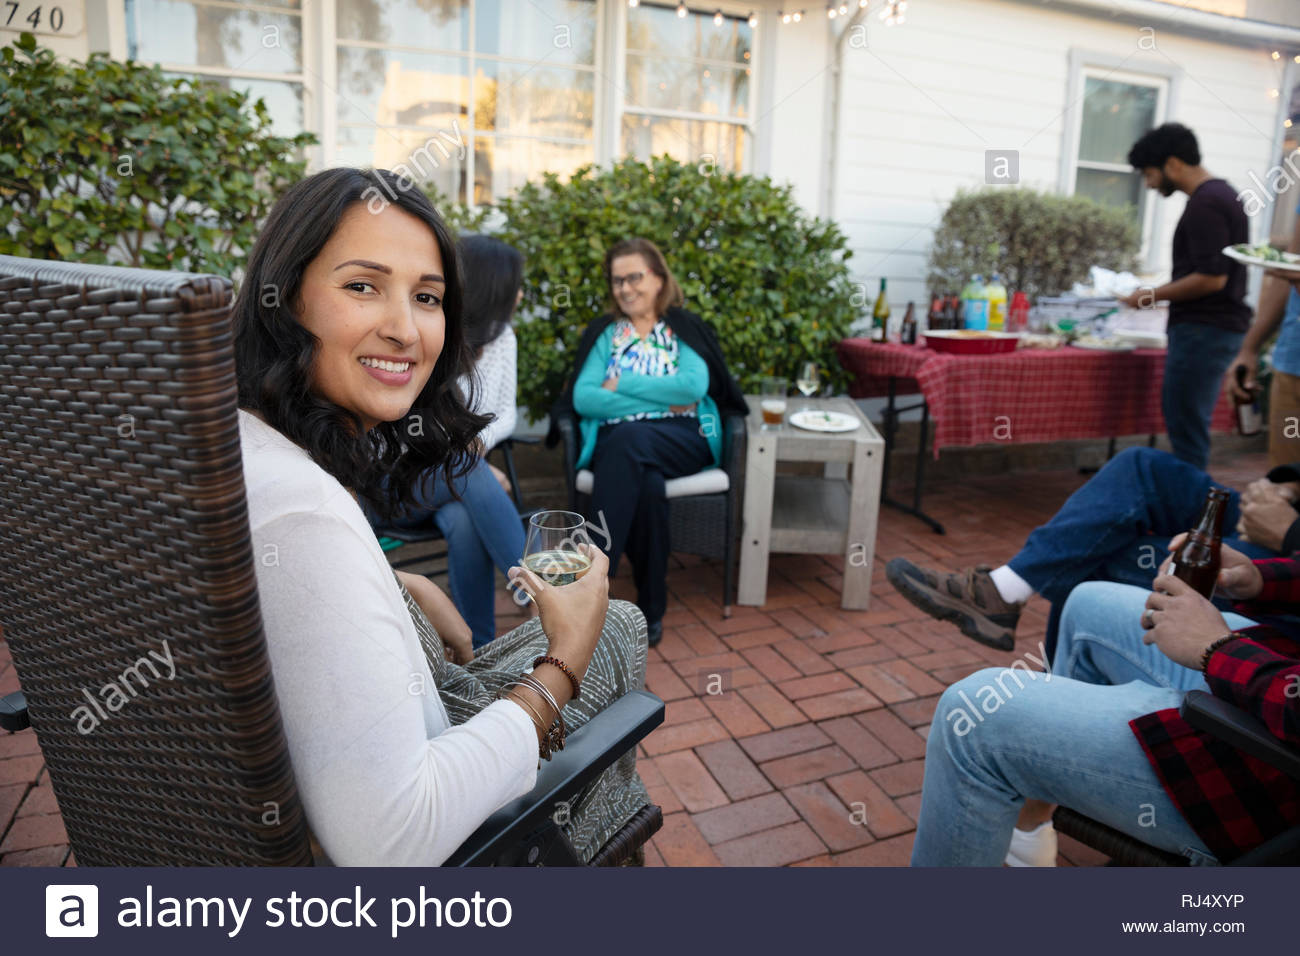 Portrait smiling Latinx woman drinking wine with family on patio - Stock Image